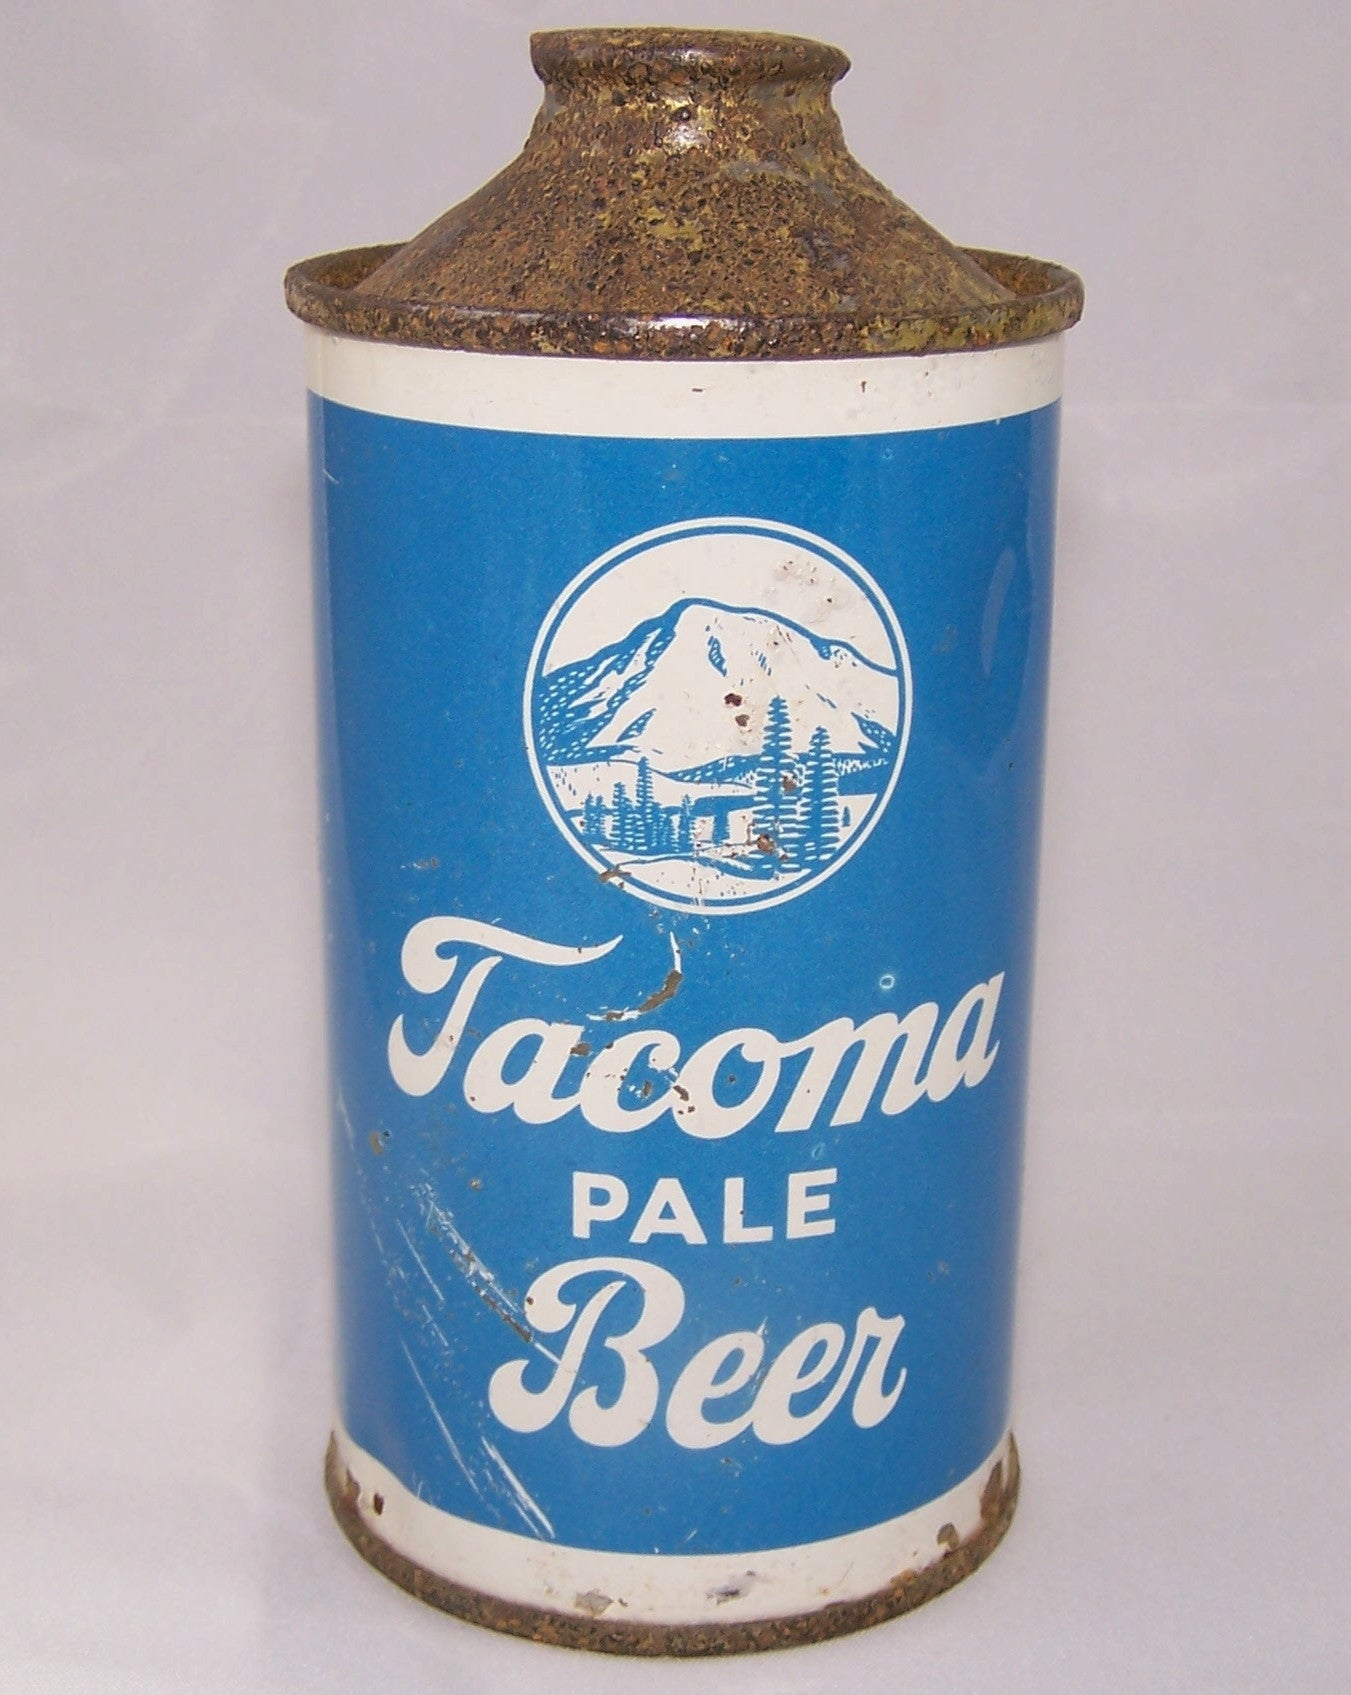 Tacoma Pale Beer, USBC 186-19. Grade 2+ Sold 7/5/15